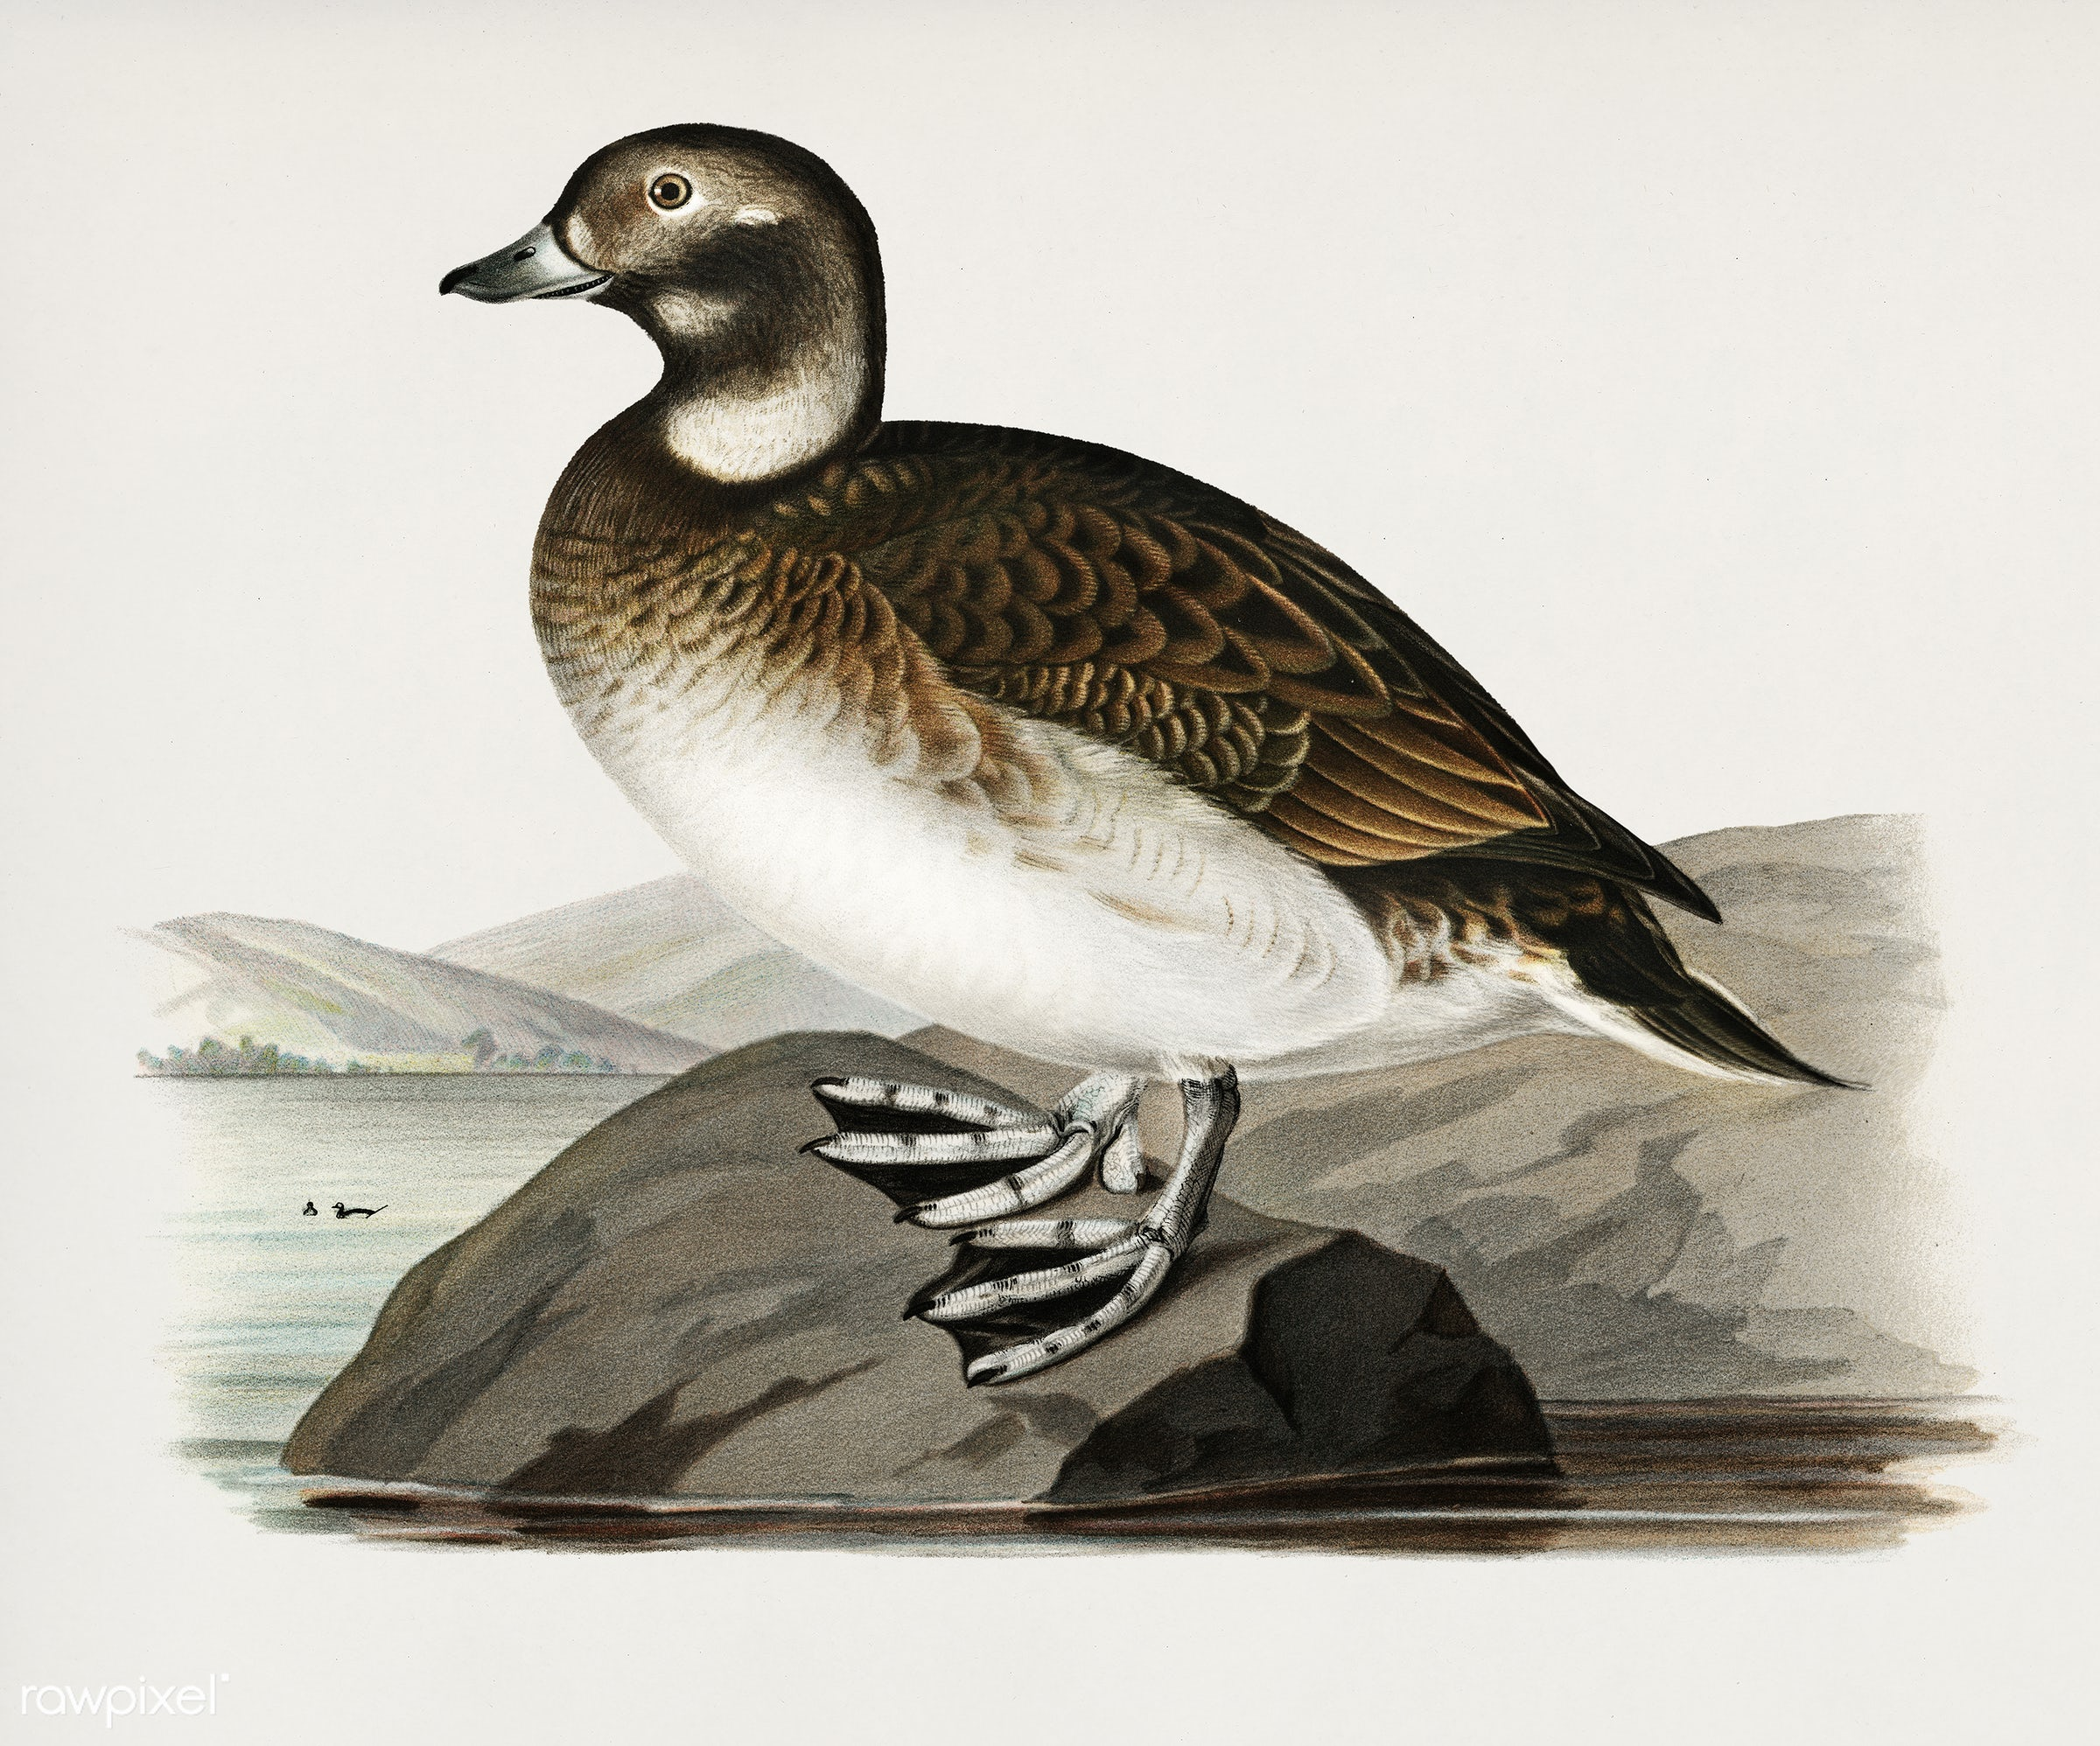 Long-tailed Duck (Harelda hyemalis) illustrated by the von Wright brothers. Digitally enhanced from our own 1929 folio...